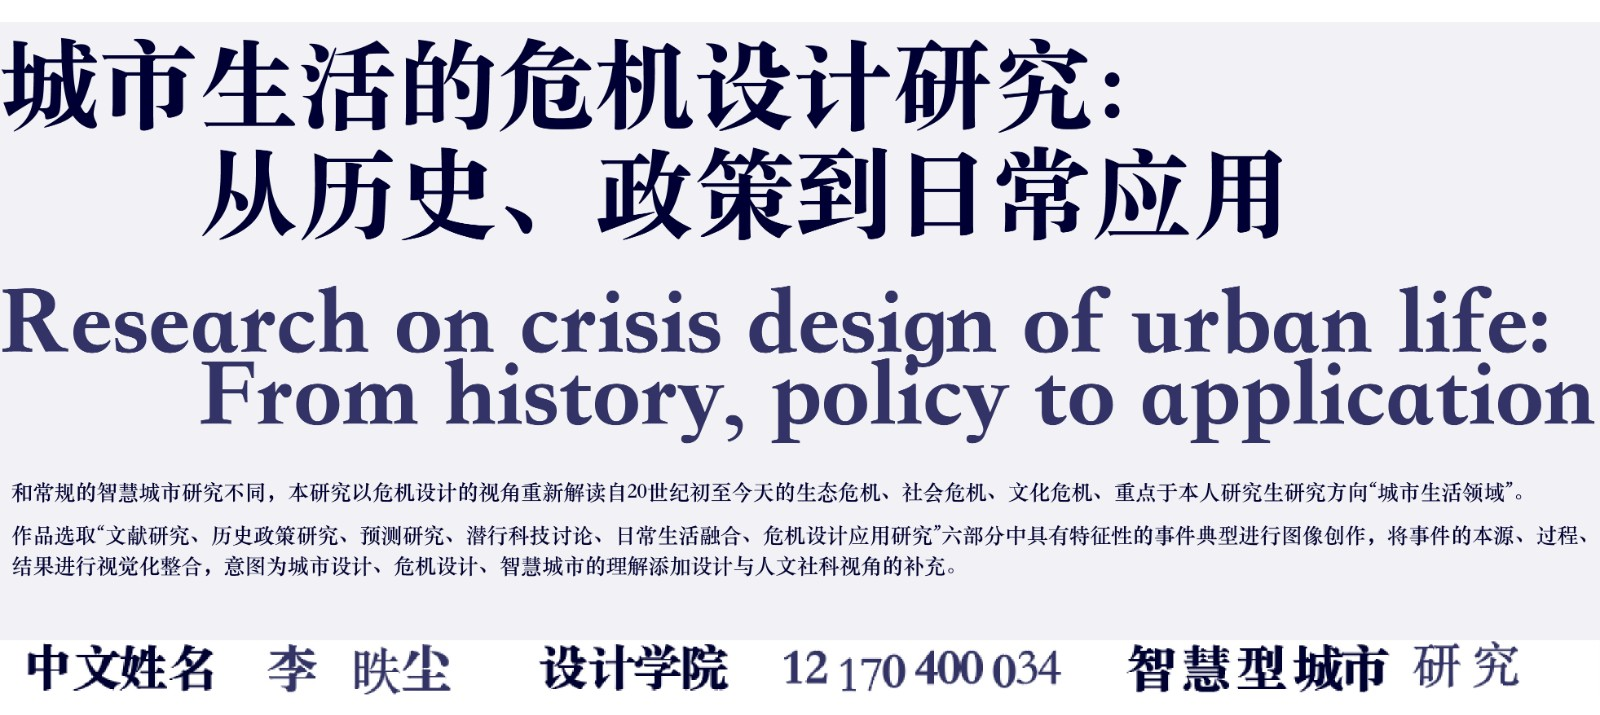 "22 Li Yichen, ""Research on Crisis Design of Urban Life- From History, Policy to Application""  Research Direction- Smart City Research.jpg"